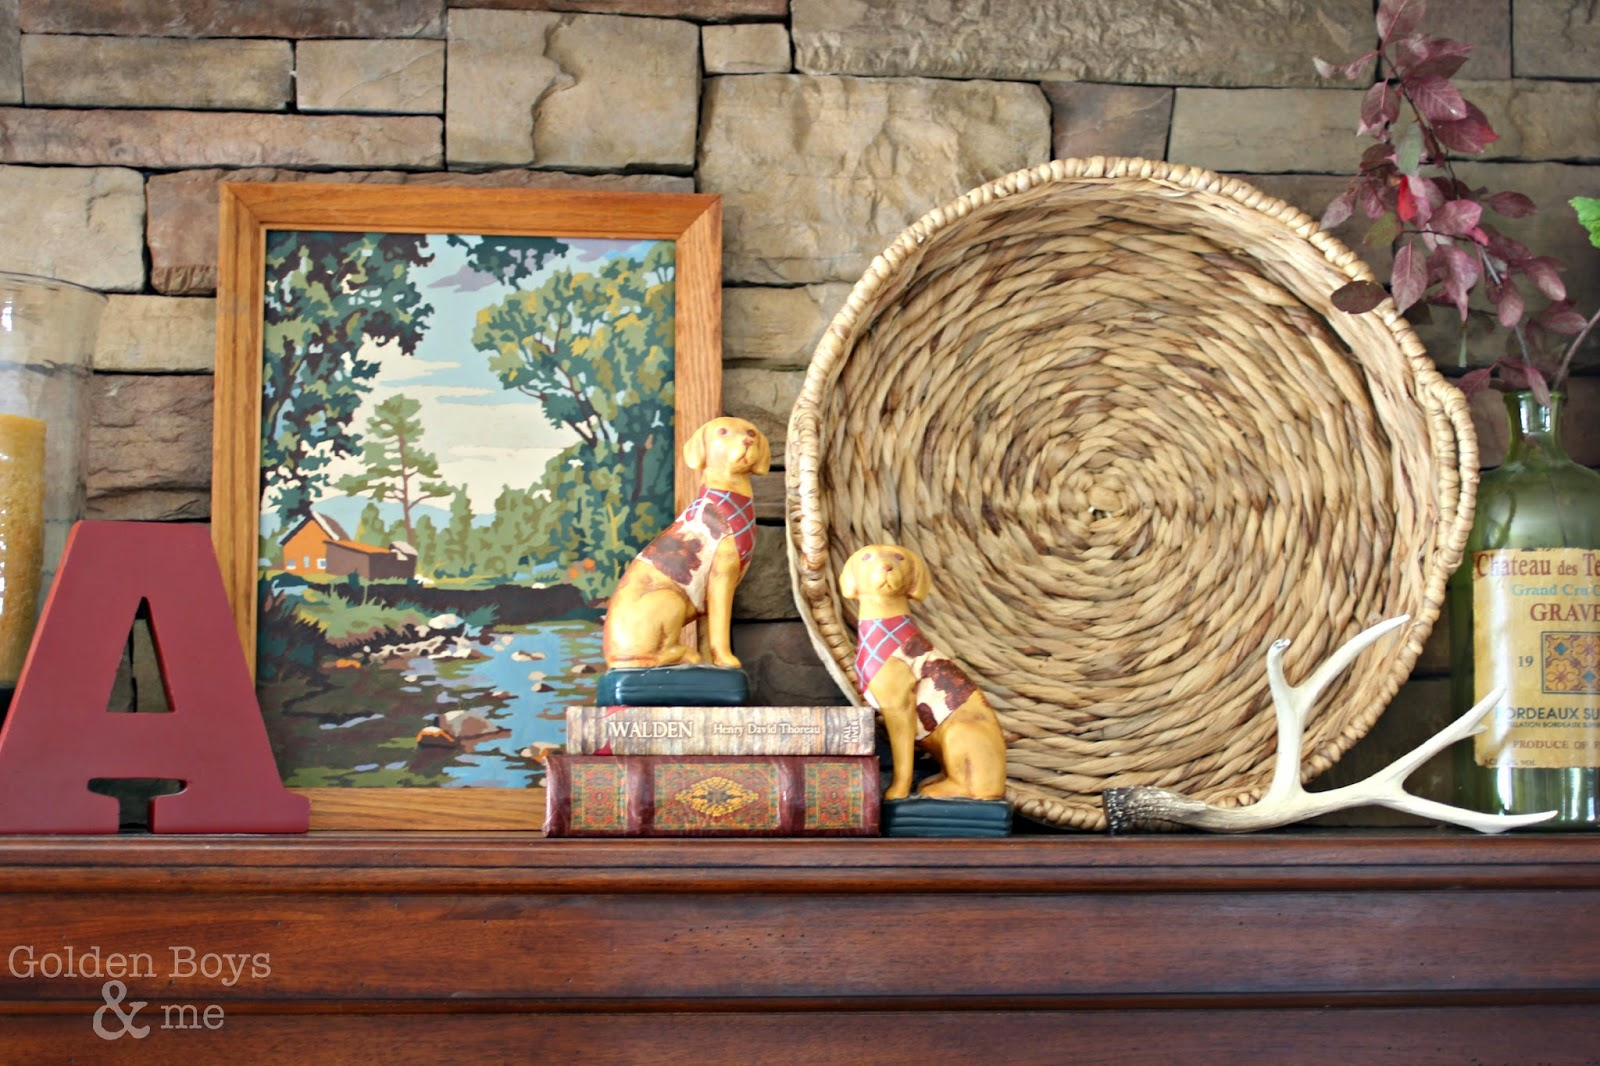 Vintage paint by number and round basket for mantel display-www.goldenboysandme.com